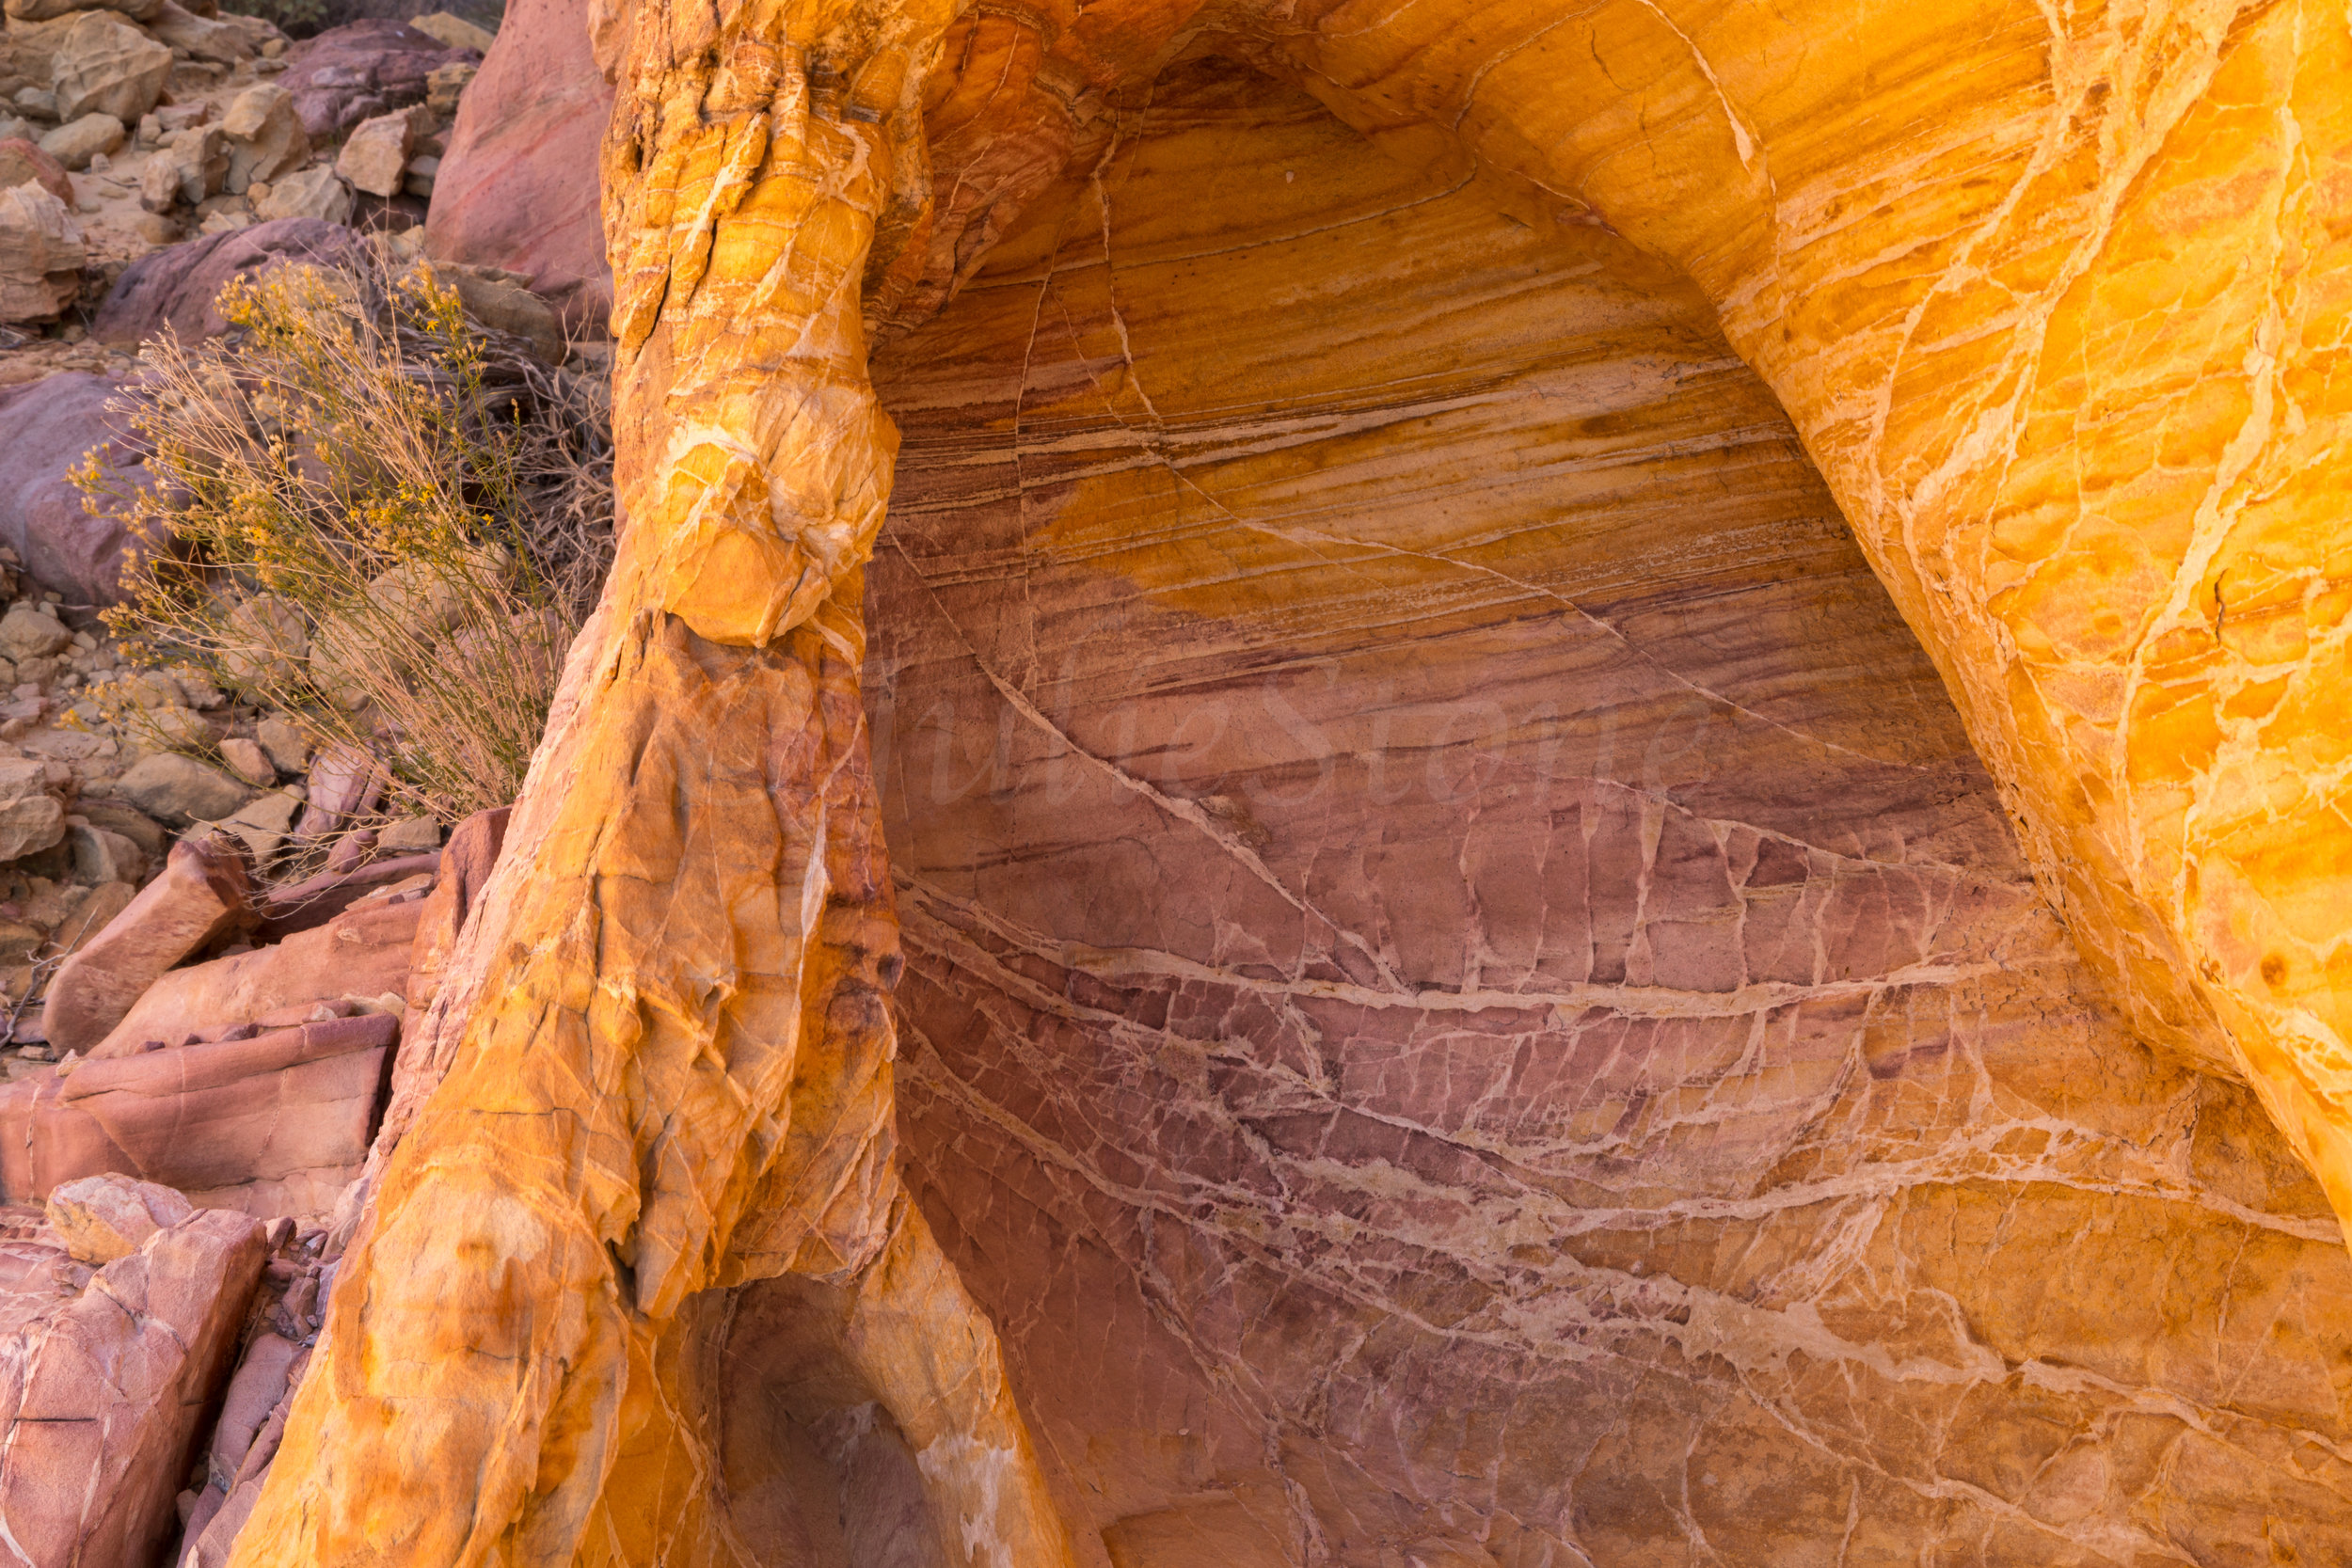 Valley of Fire, Image # 2968